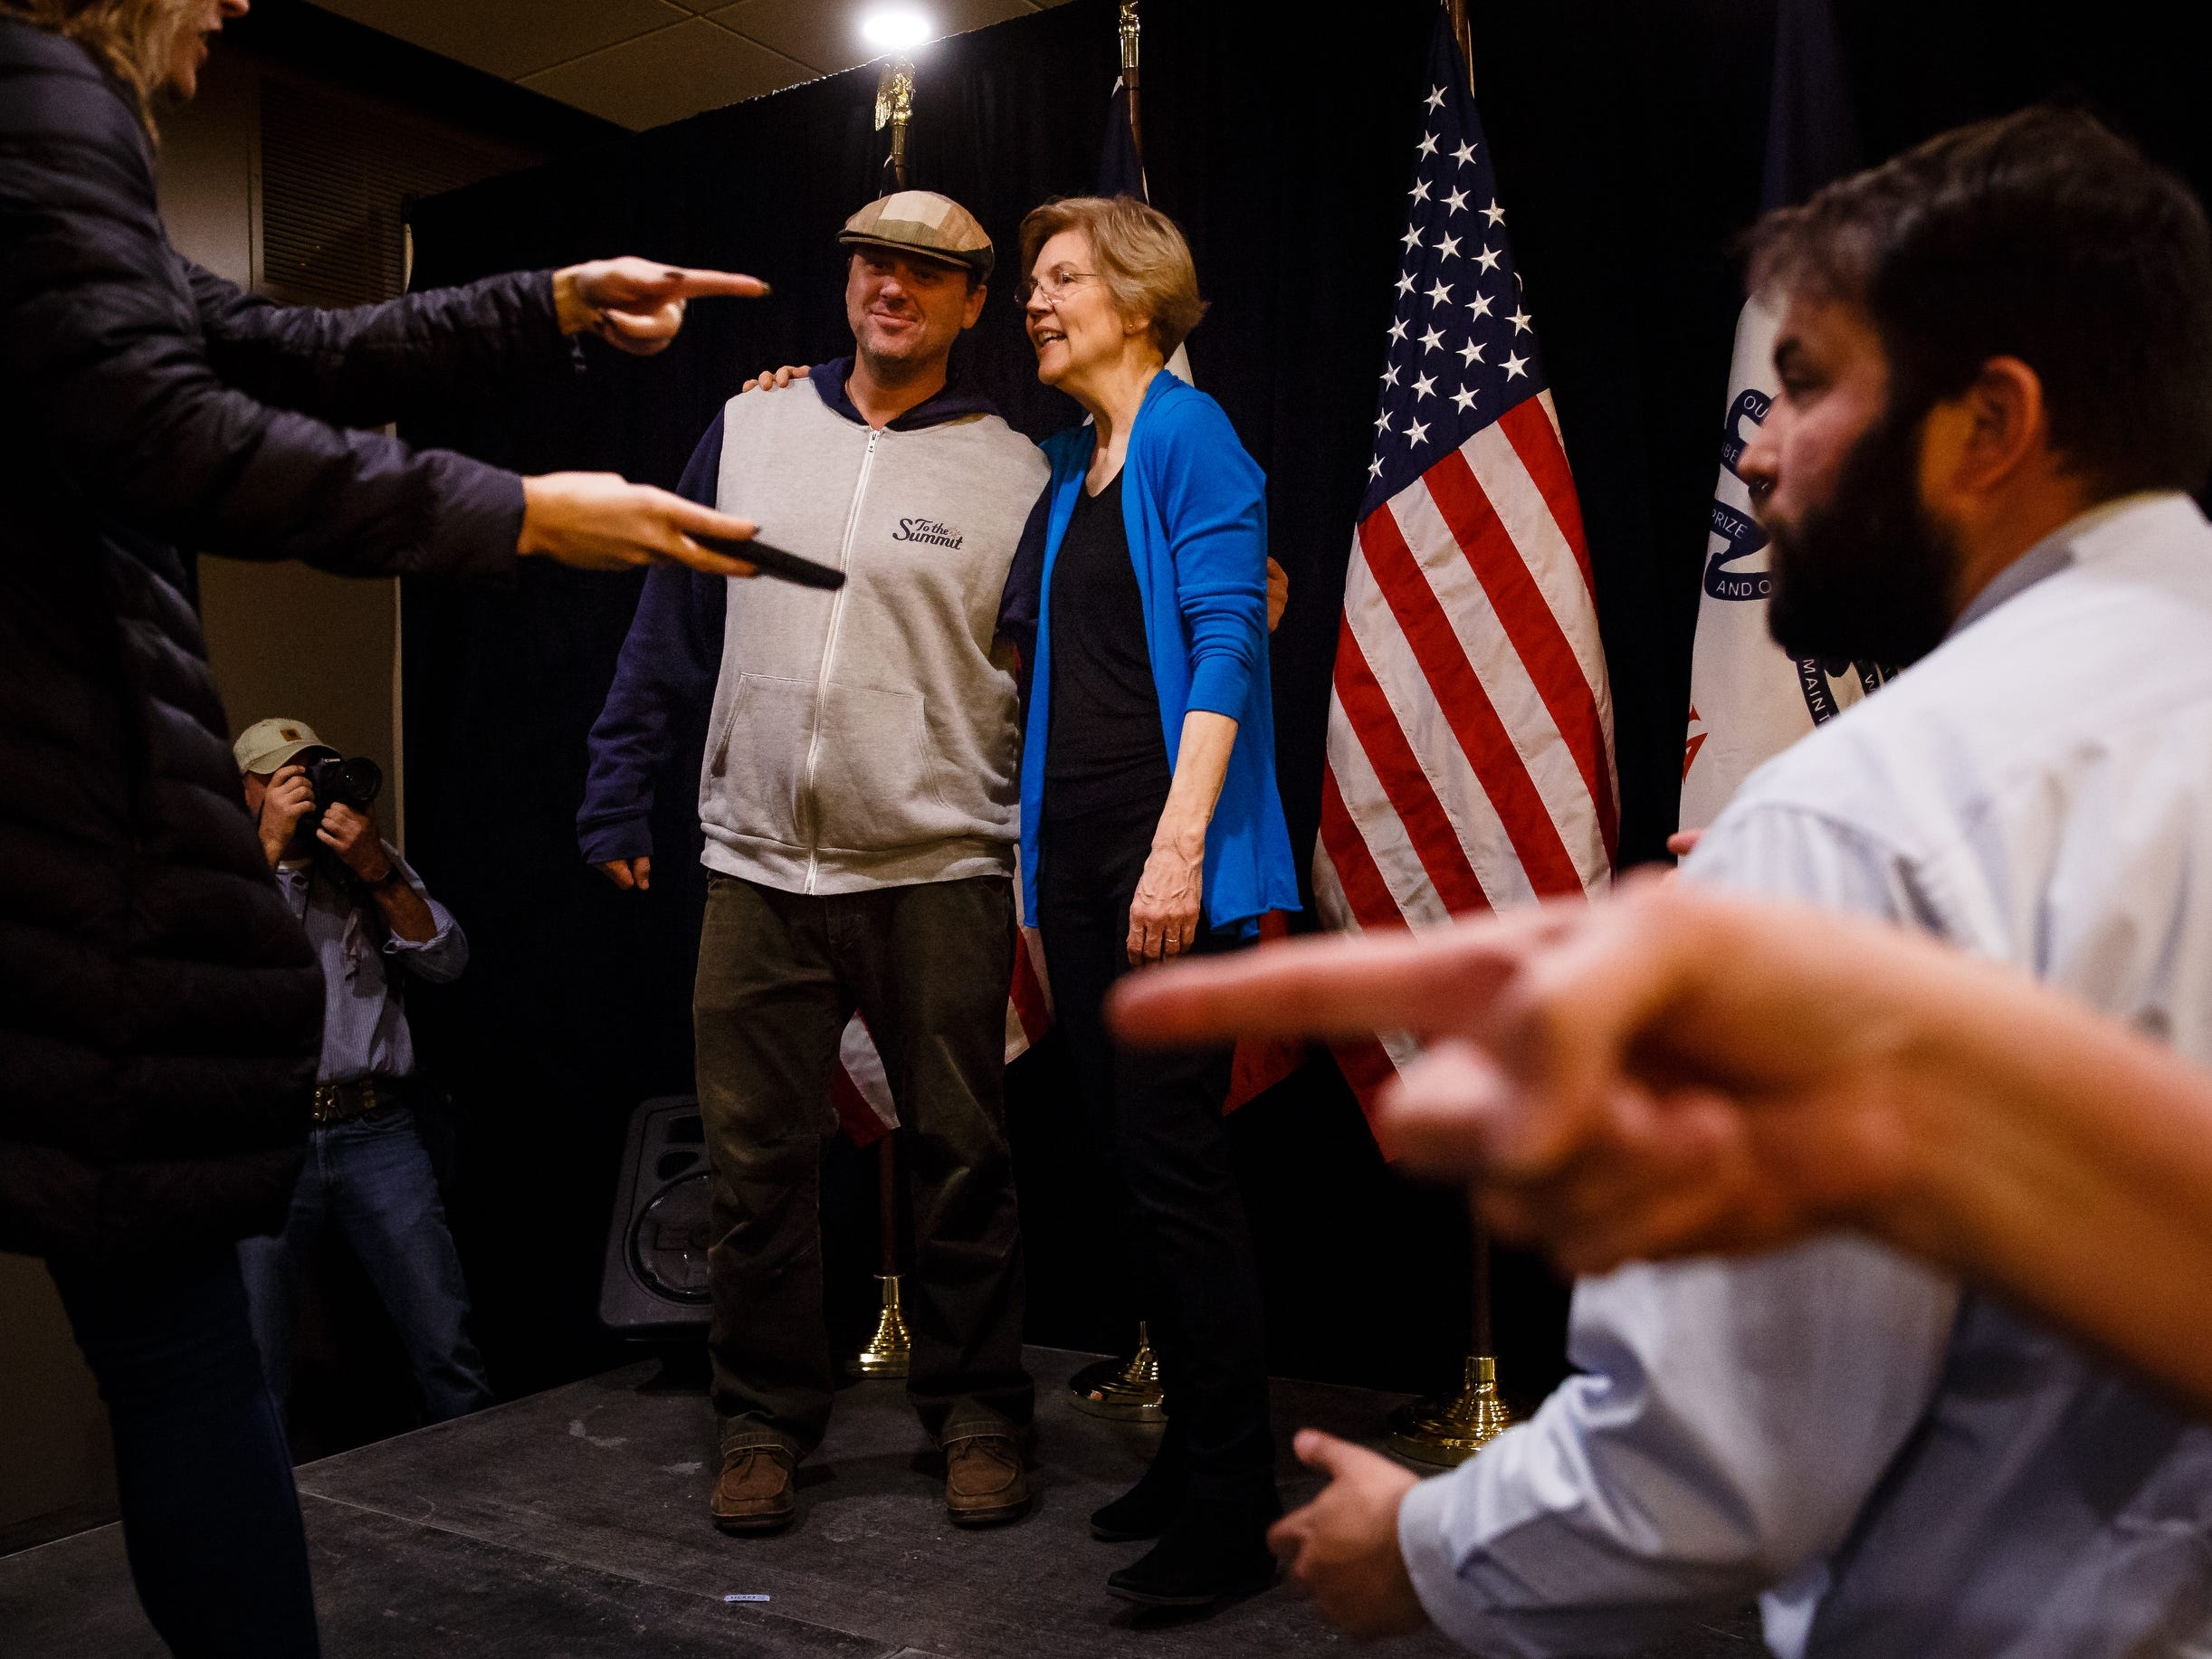 Sen. Elizabeth Warren takes photos with people after speaking at an event on her first trip through Iowa as a possible 2020 presidential candidate on Friday, Jan. 4, 2019, in Council Bluffs.